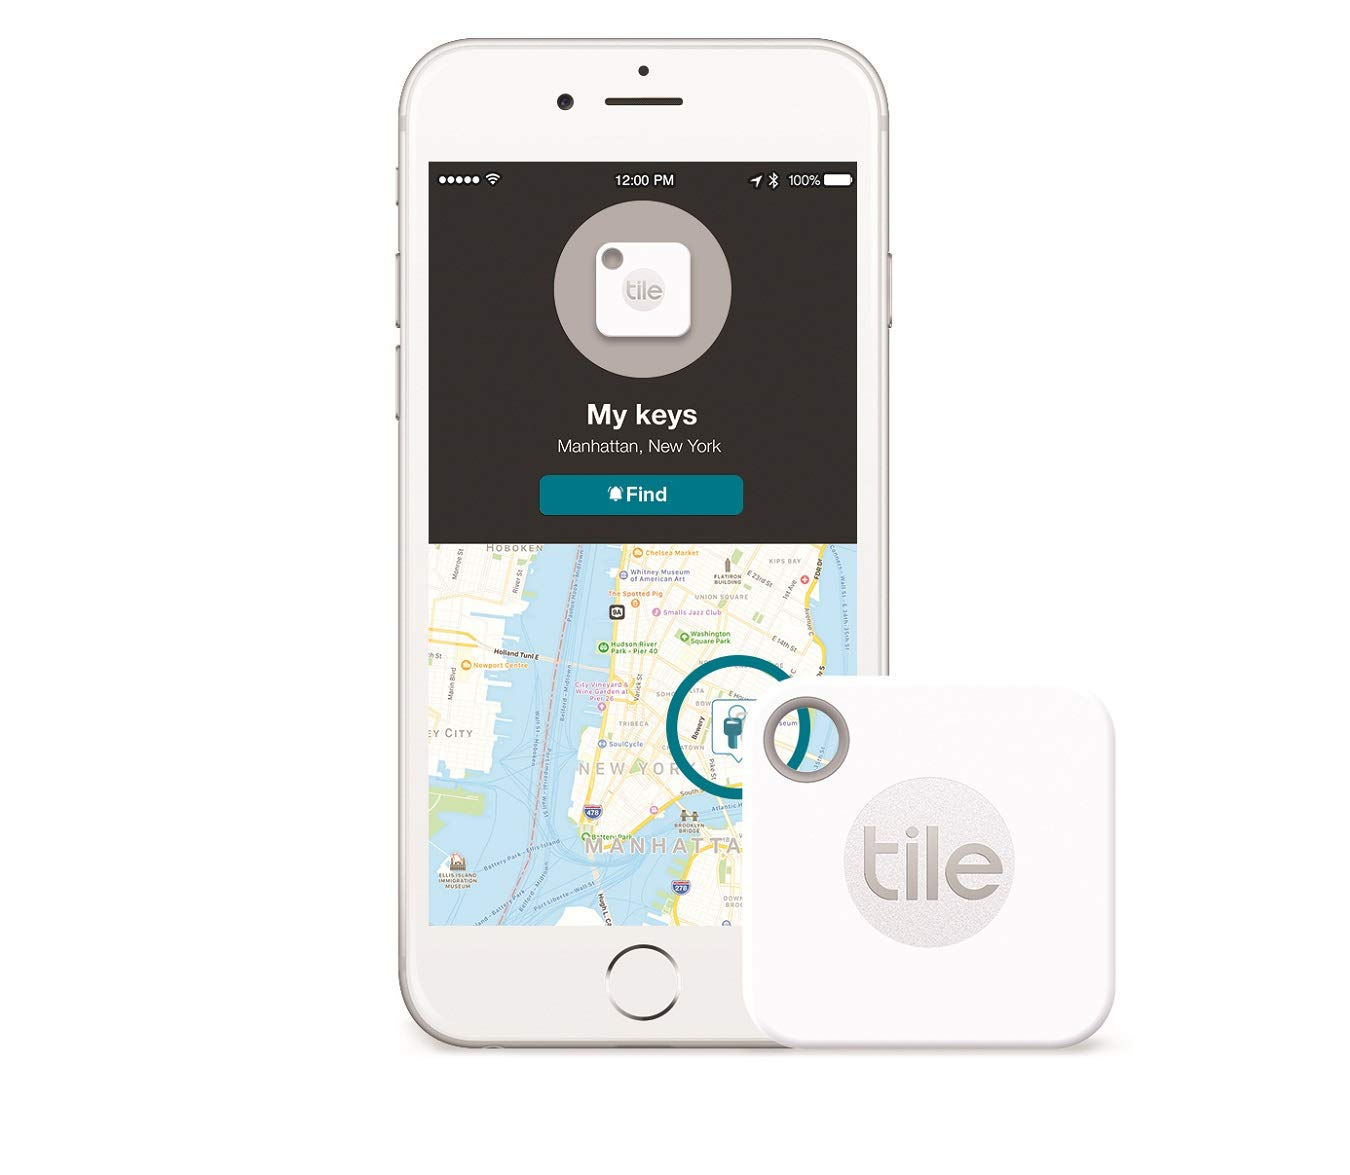 Tile Mate with Replaceable Battery and Tile Slim